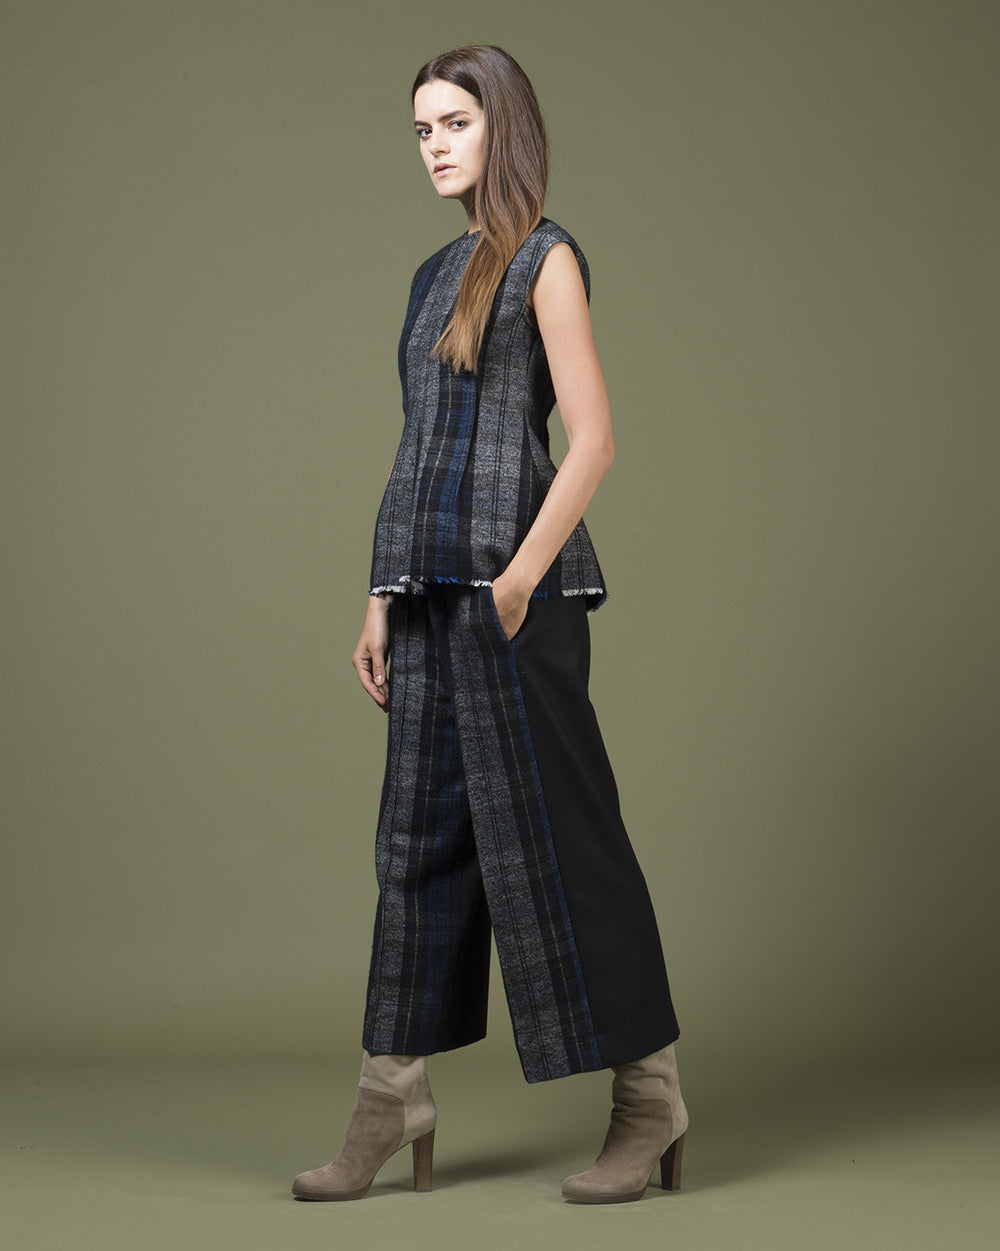 Black Tartan Sleeveless Top